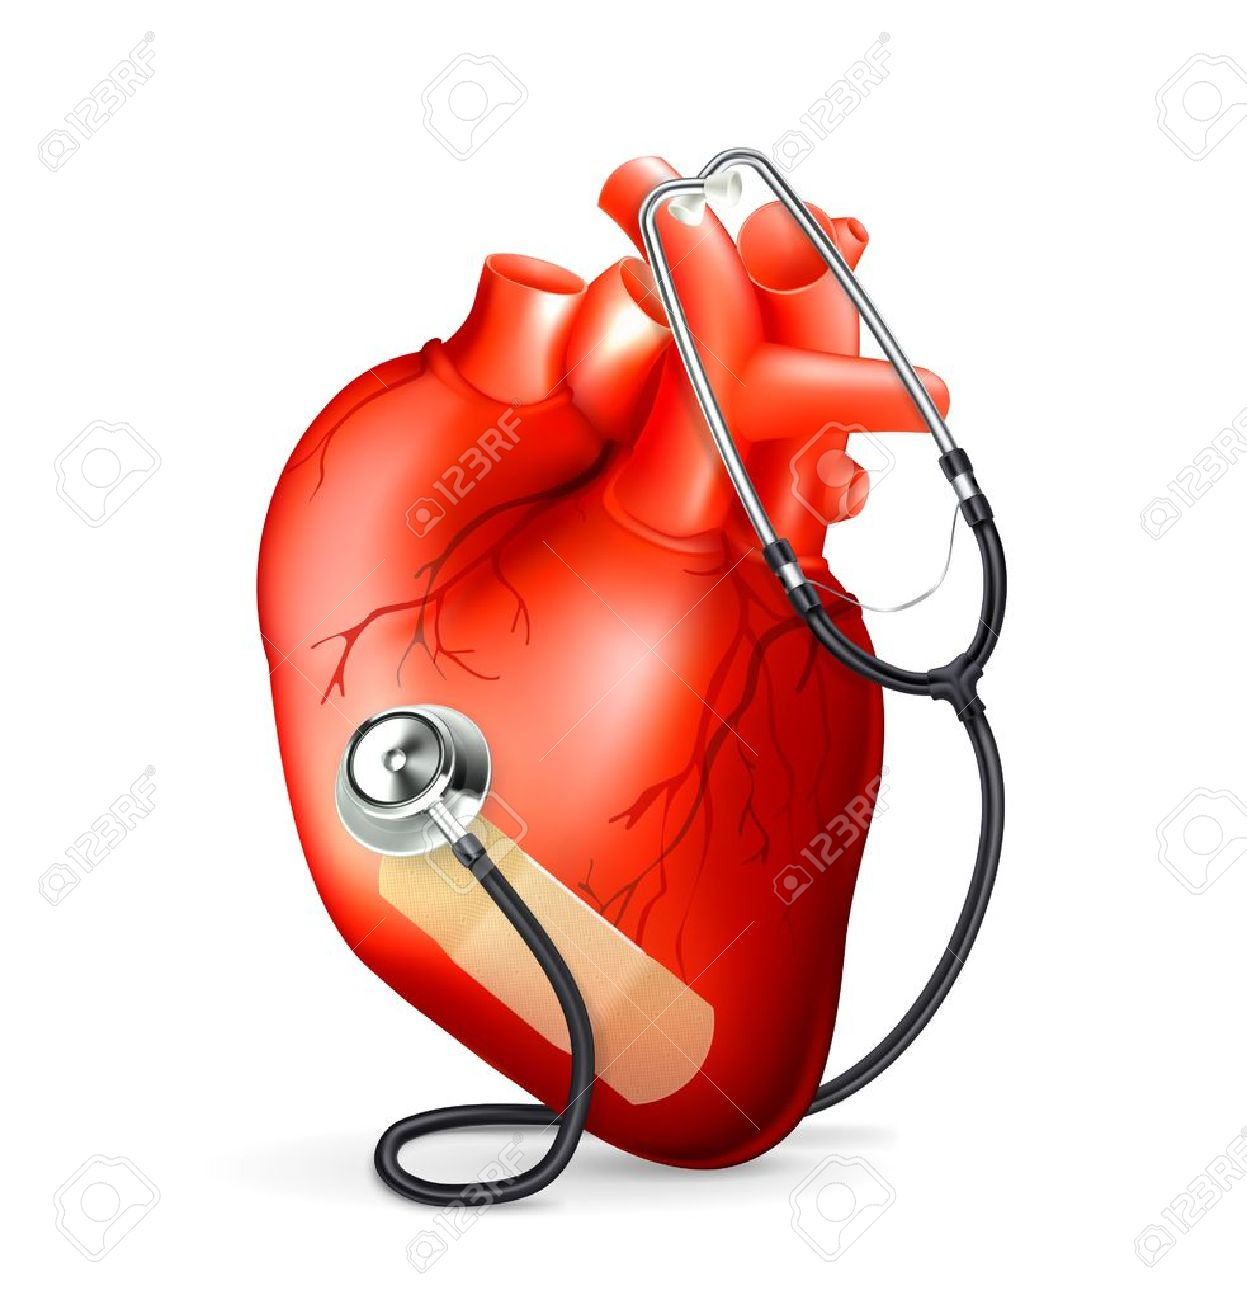 Heart and stethoscope - 13833766